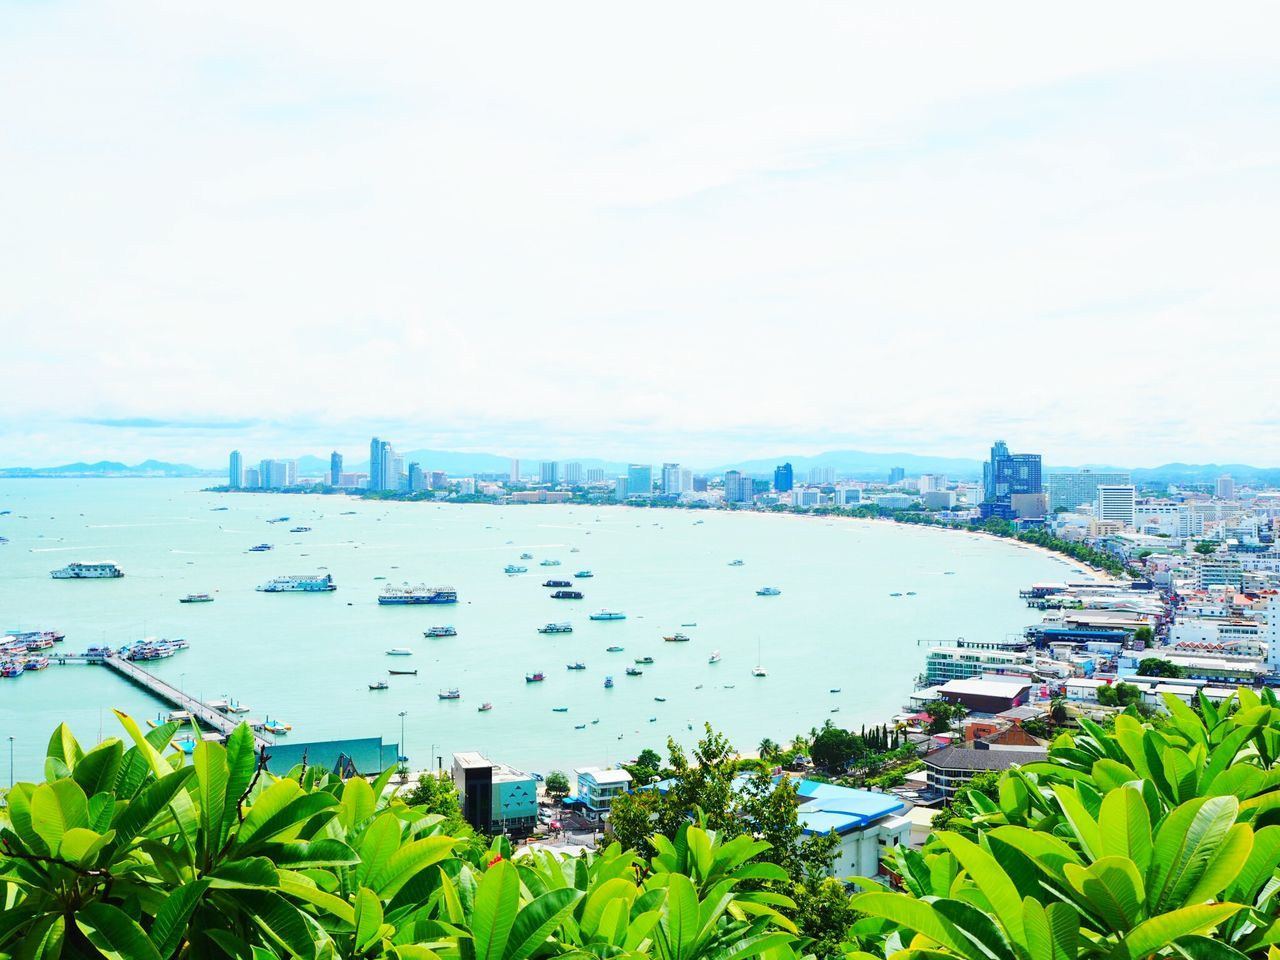 Landscape Landscape_Collection Landscape_photography Thailand Pattaya Pattaya Thailand Pattaya Beach Pattaya City Sea Sea View Sea Views